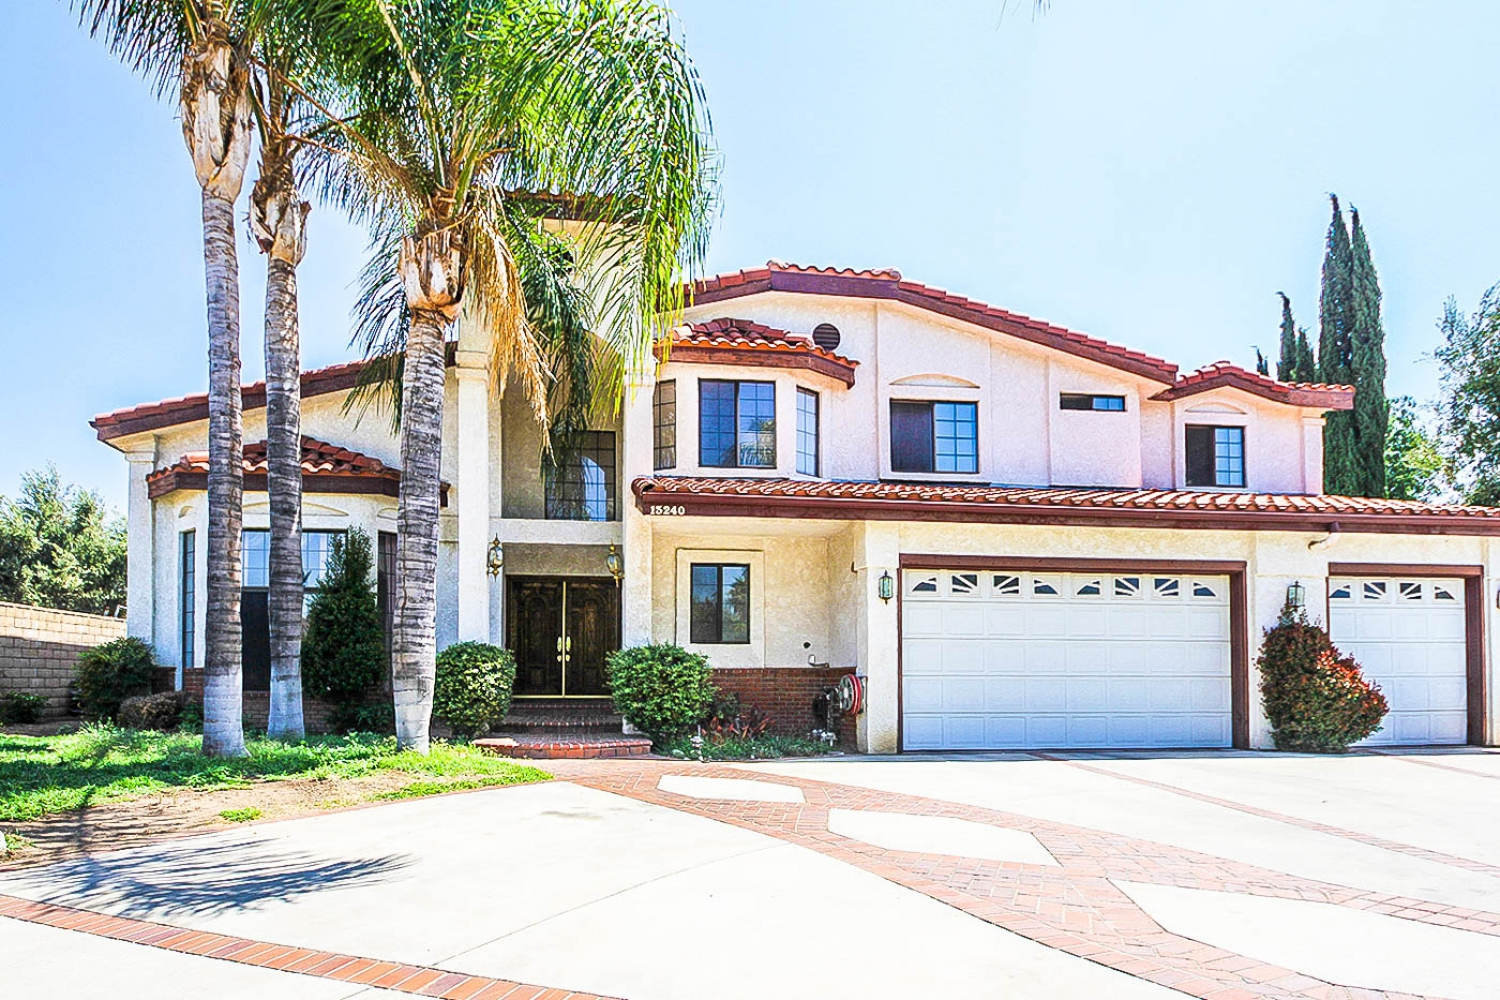 13101 Tripoli Ave Sylmar Ca 91342 Johnhart Real Estate Redefined